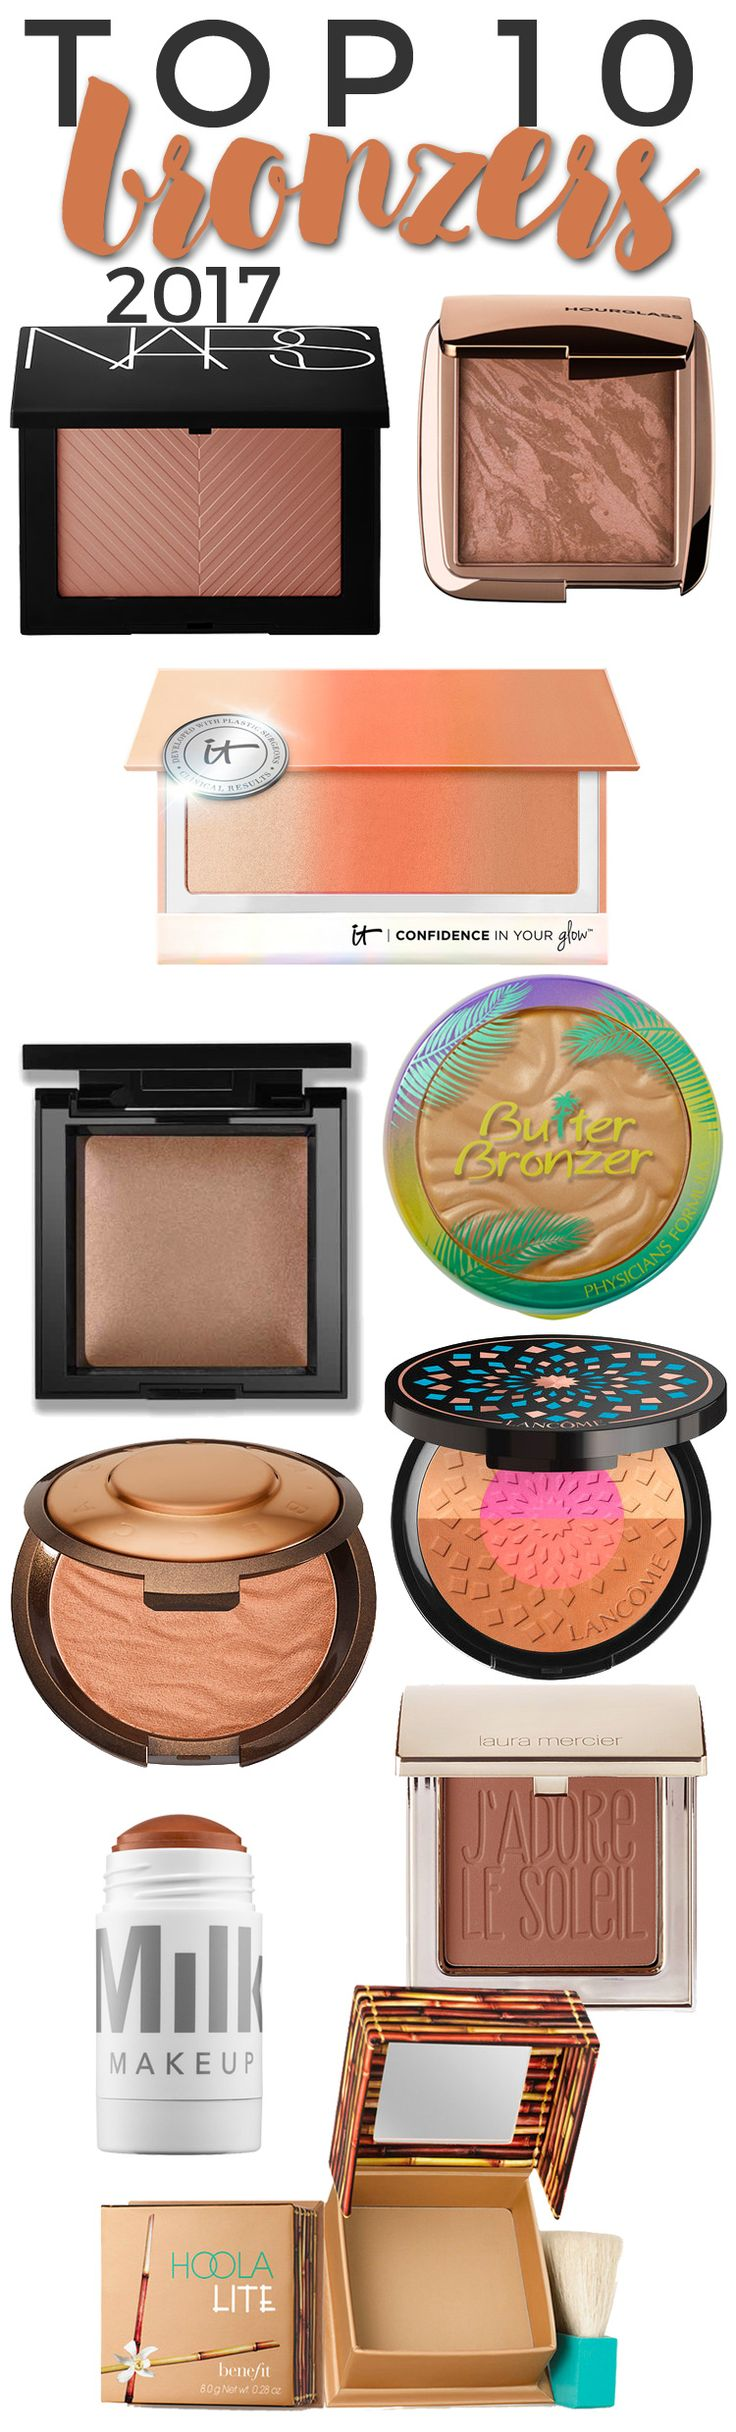 I use bronzer every day to warm up my skin tone and overall makeup look,  but when it comes to the summer months, I use more bronzer to add a  sun-kissed look to my skin. I depend on different bronzers to give me a  different look, depending on the rest of my makeup or the occasion. These  are t